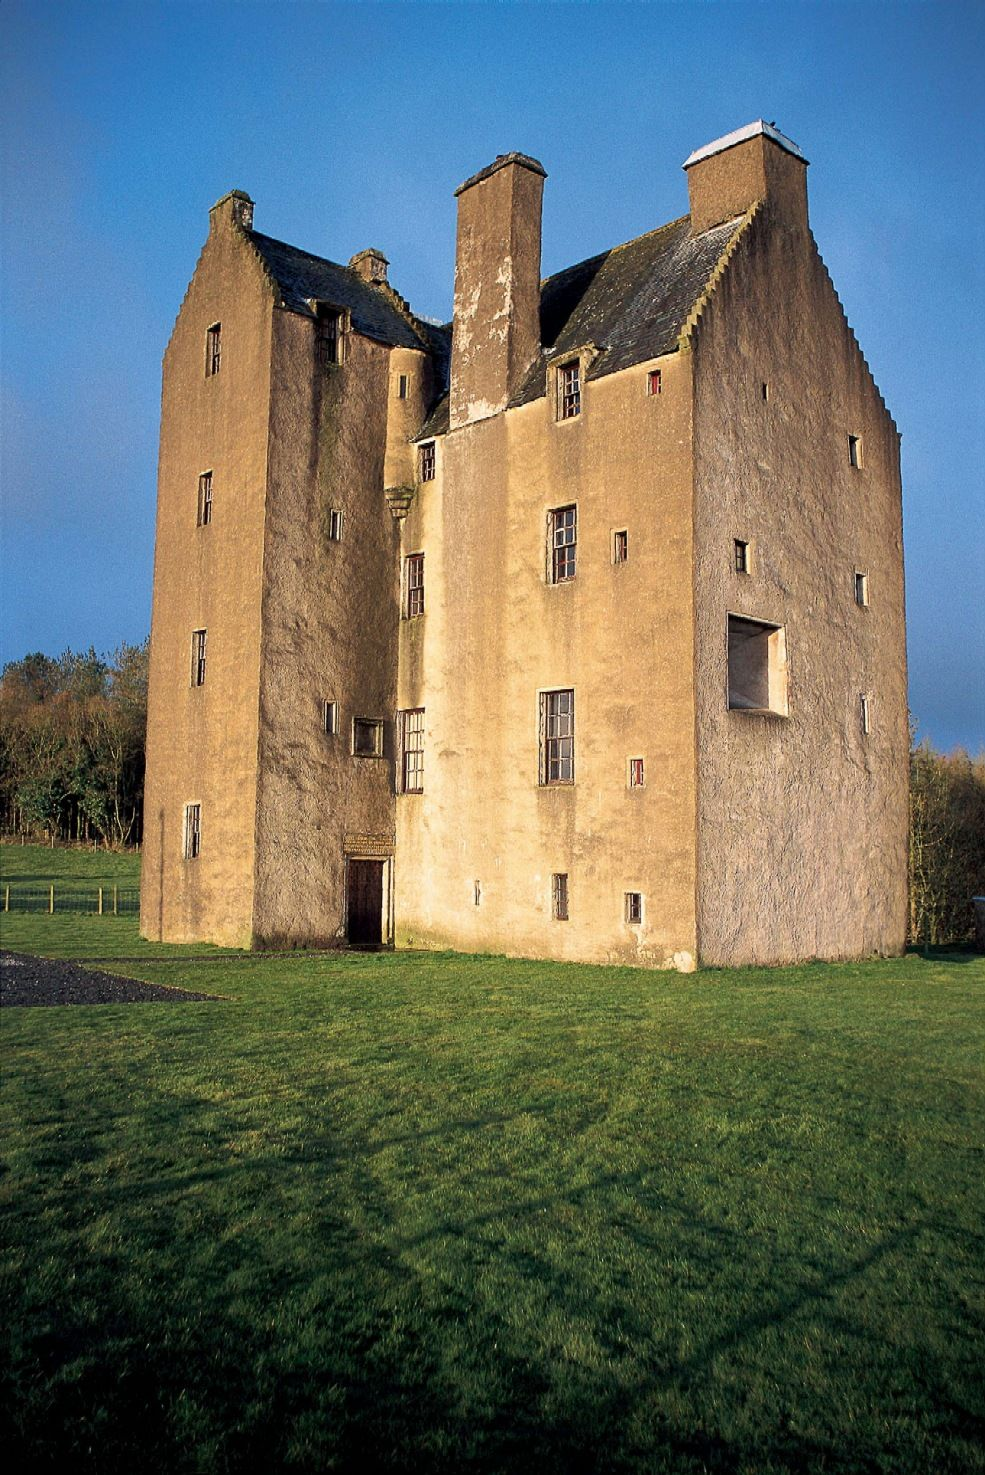 The Castle Of Park Is A 16th Century L Plan Tower House Near Glenluce,